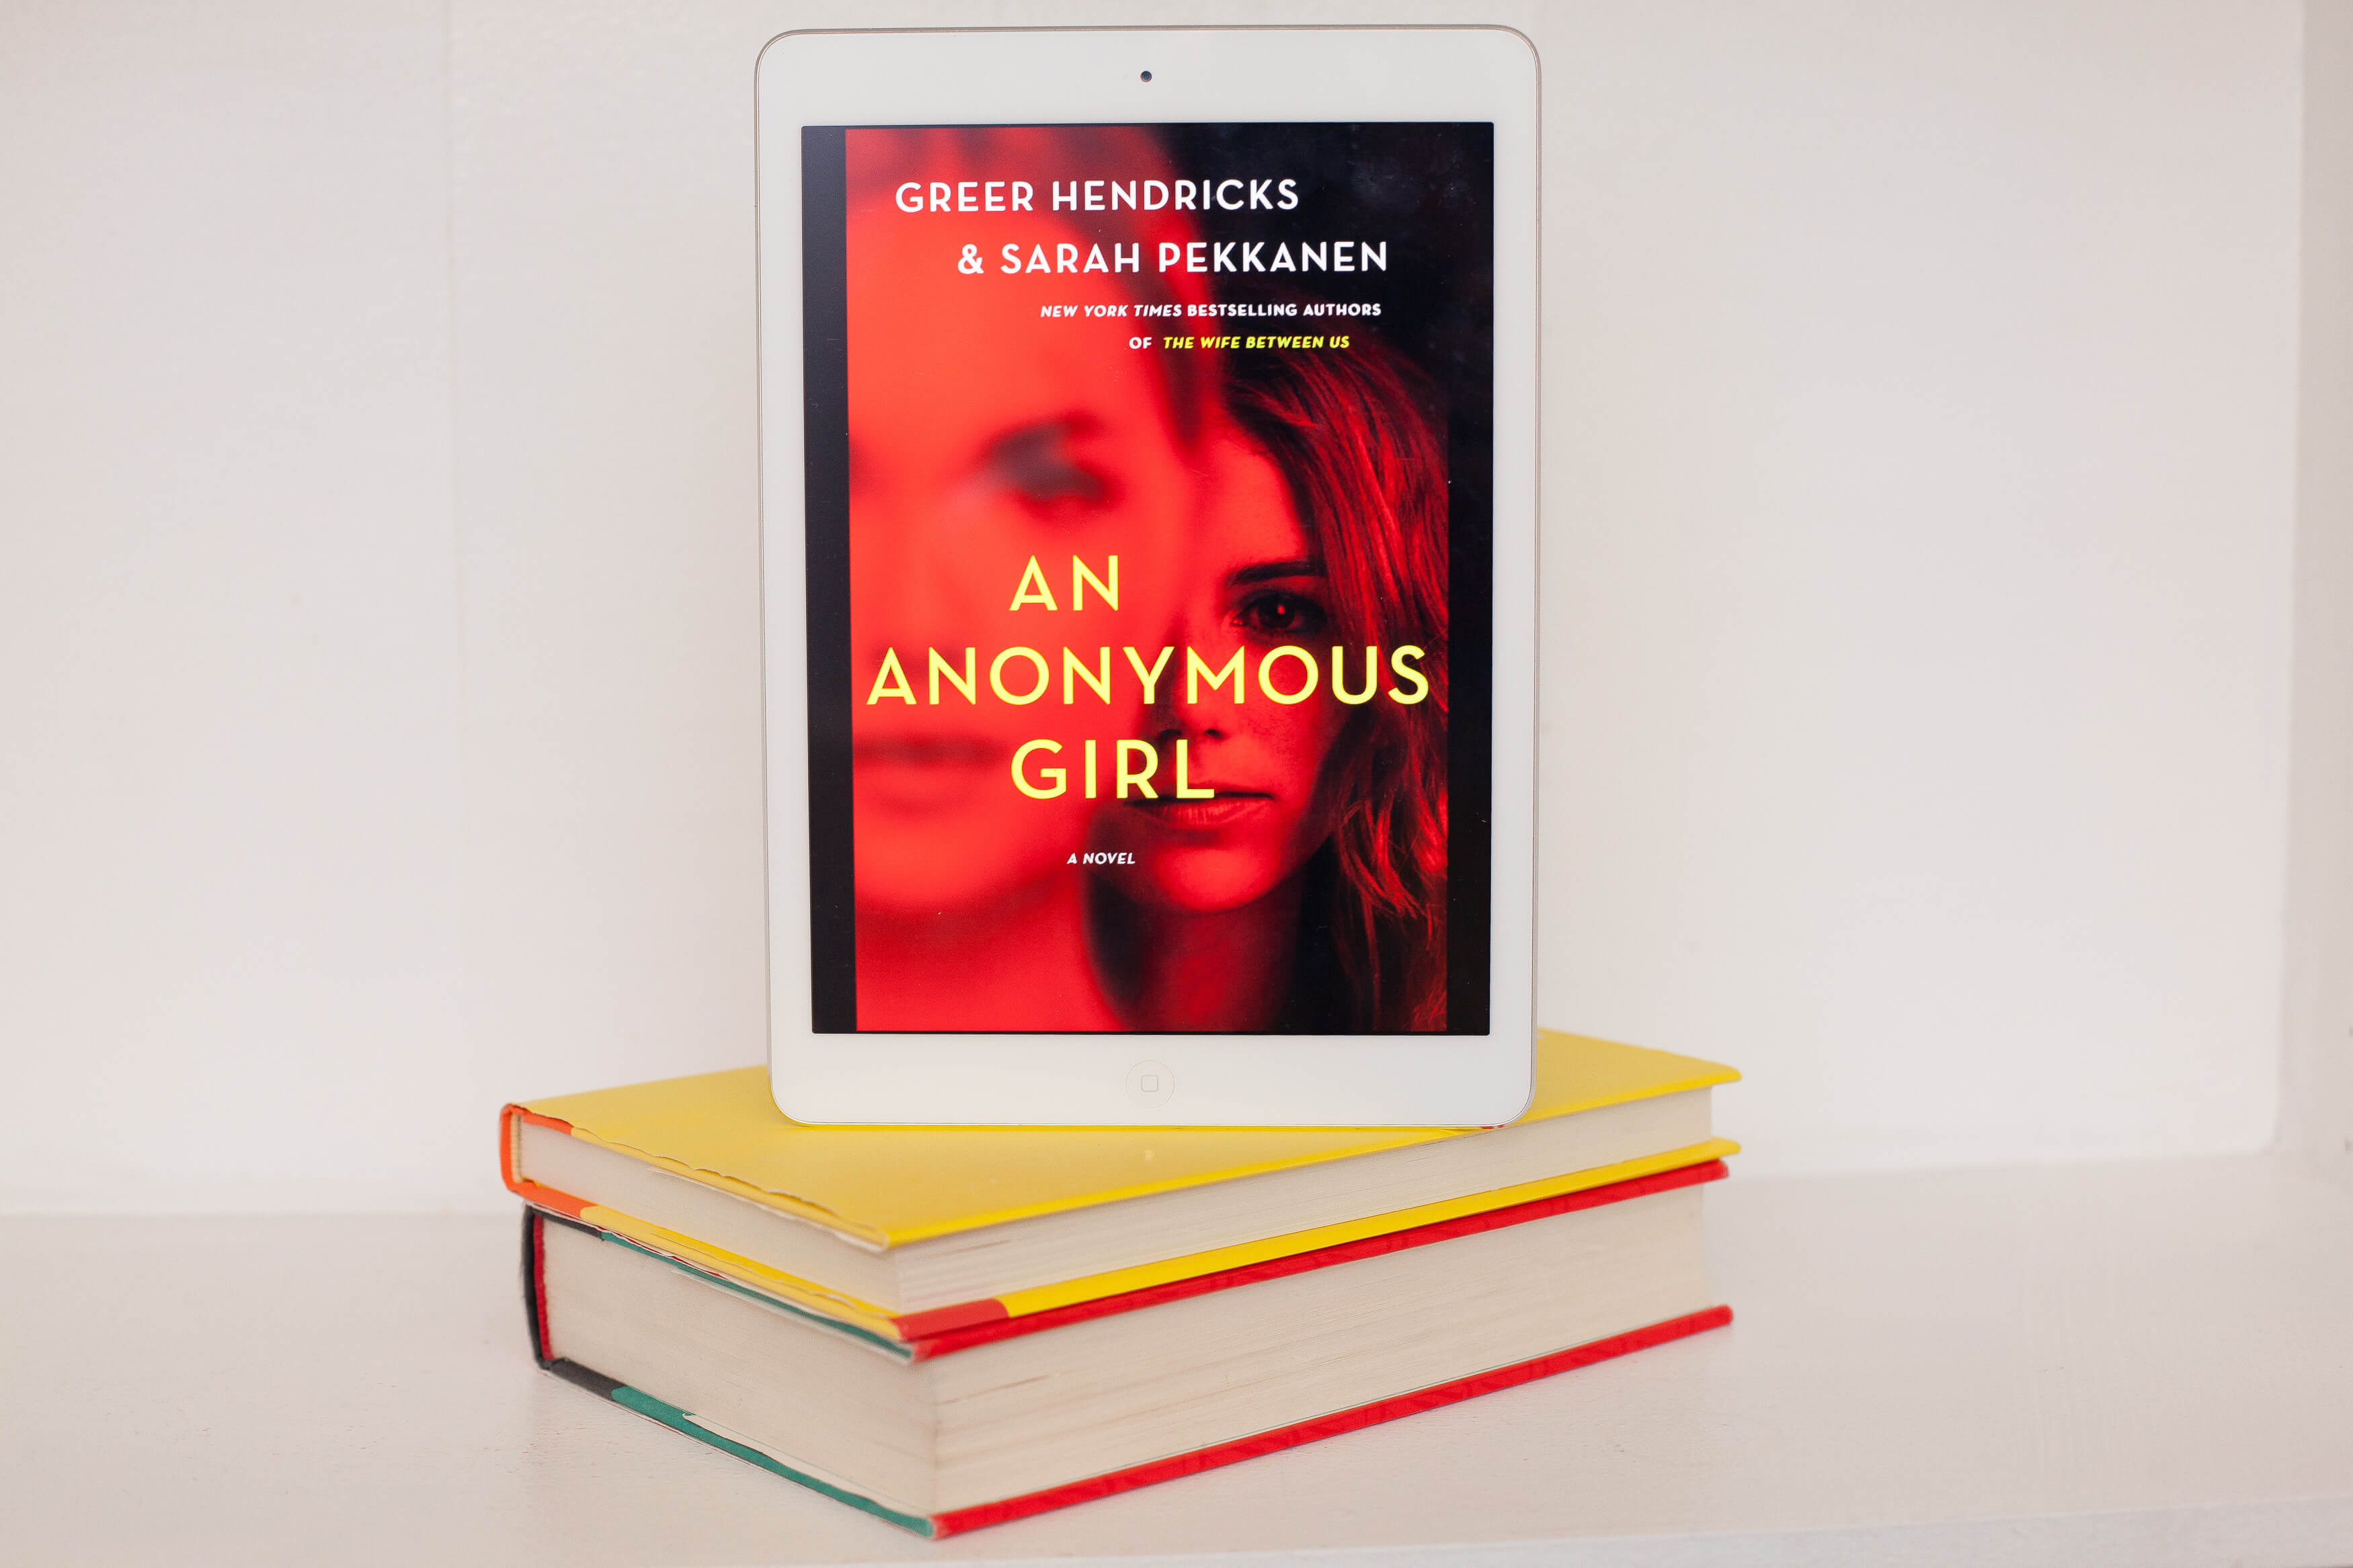 Read Remark book review - An Anonymous Girl - Read Remark